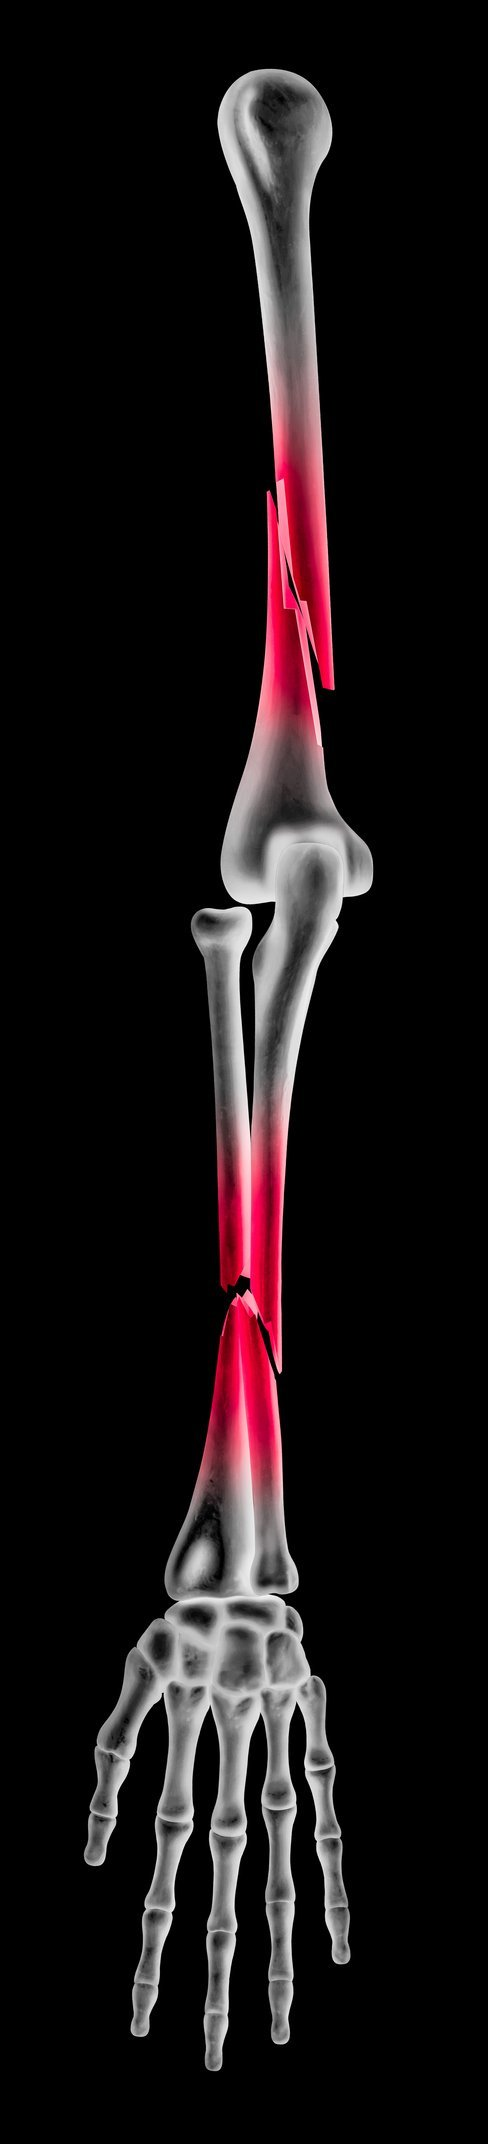 Is Heat Good for a Healing Fracture